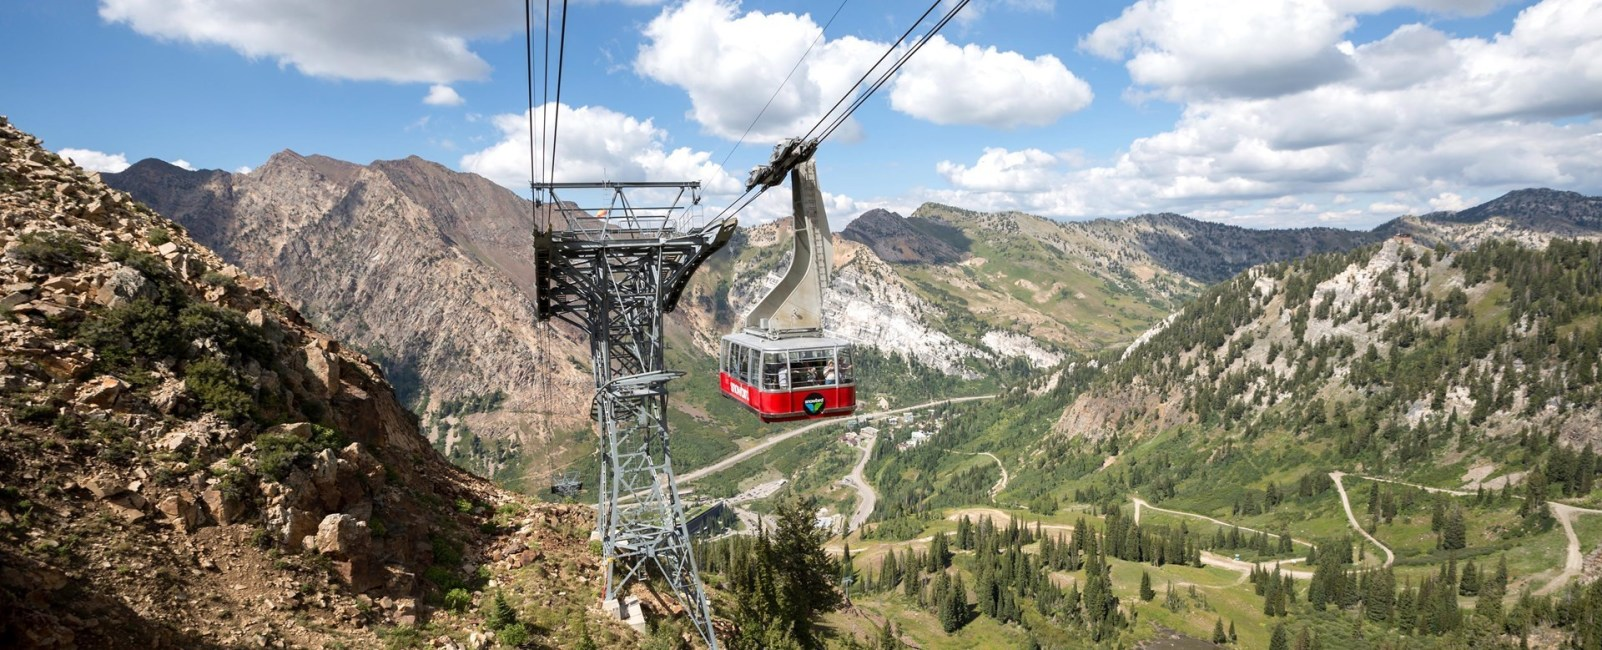 Snowbird Scenic Tram and Chairlift Ride